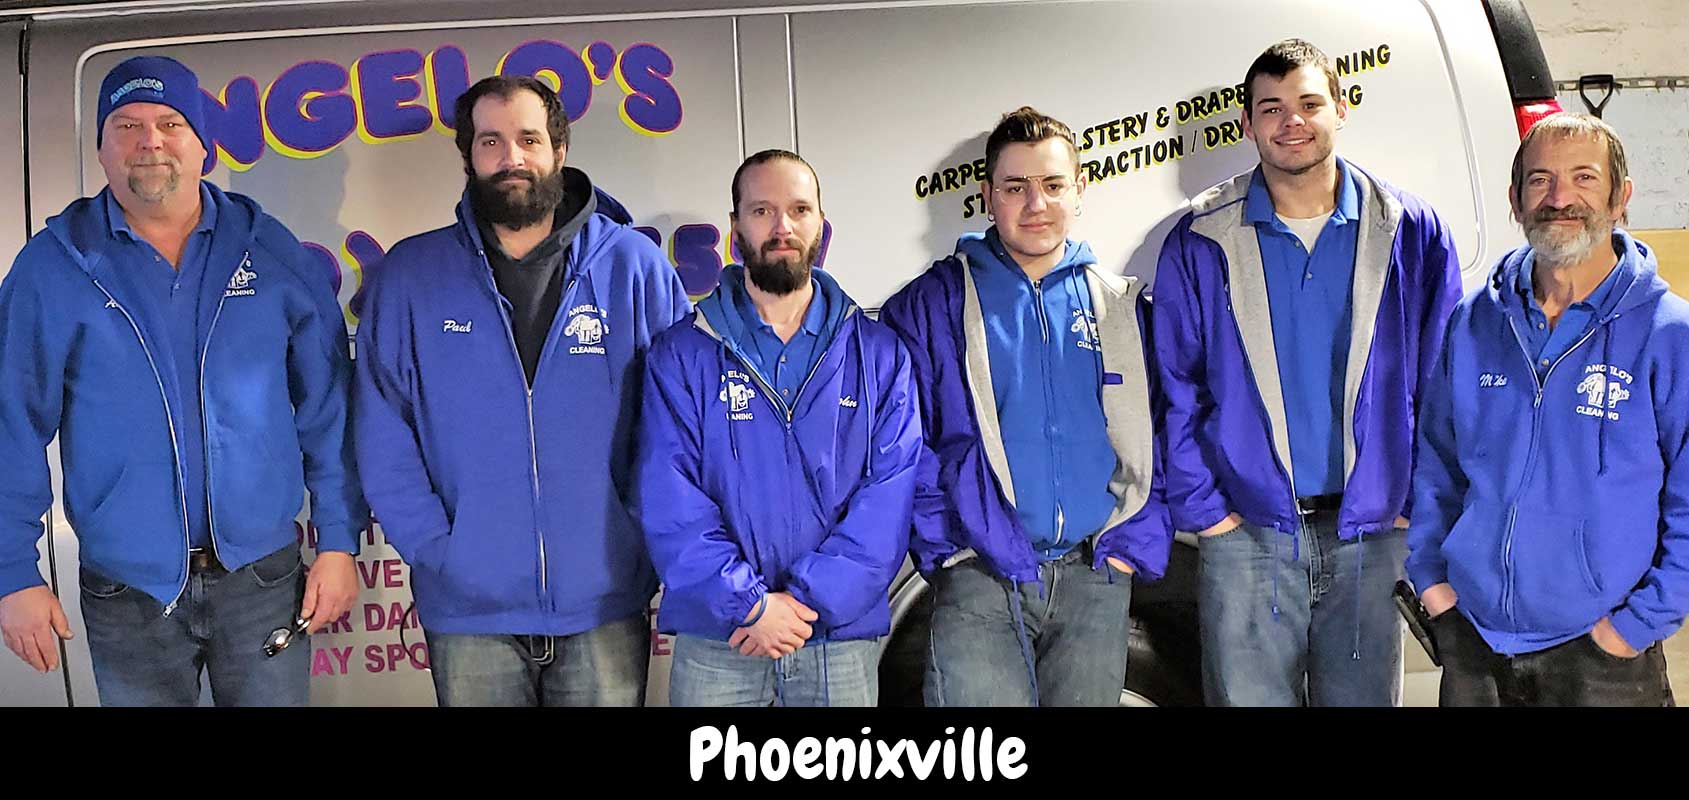 Phoenixville pa cleaning crew